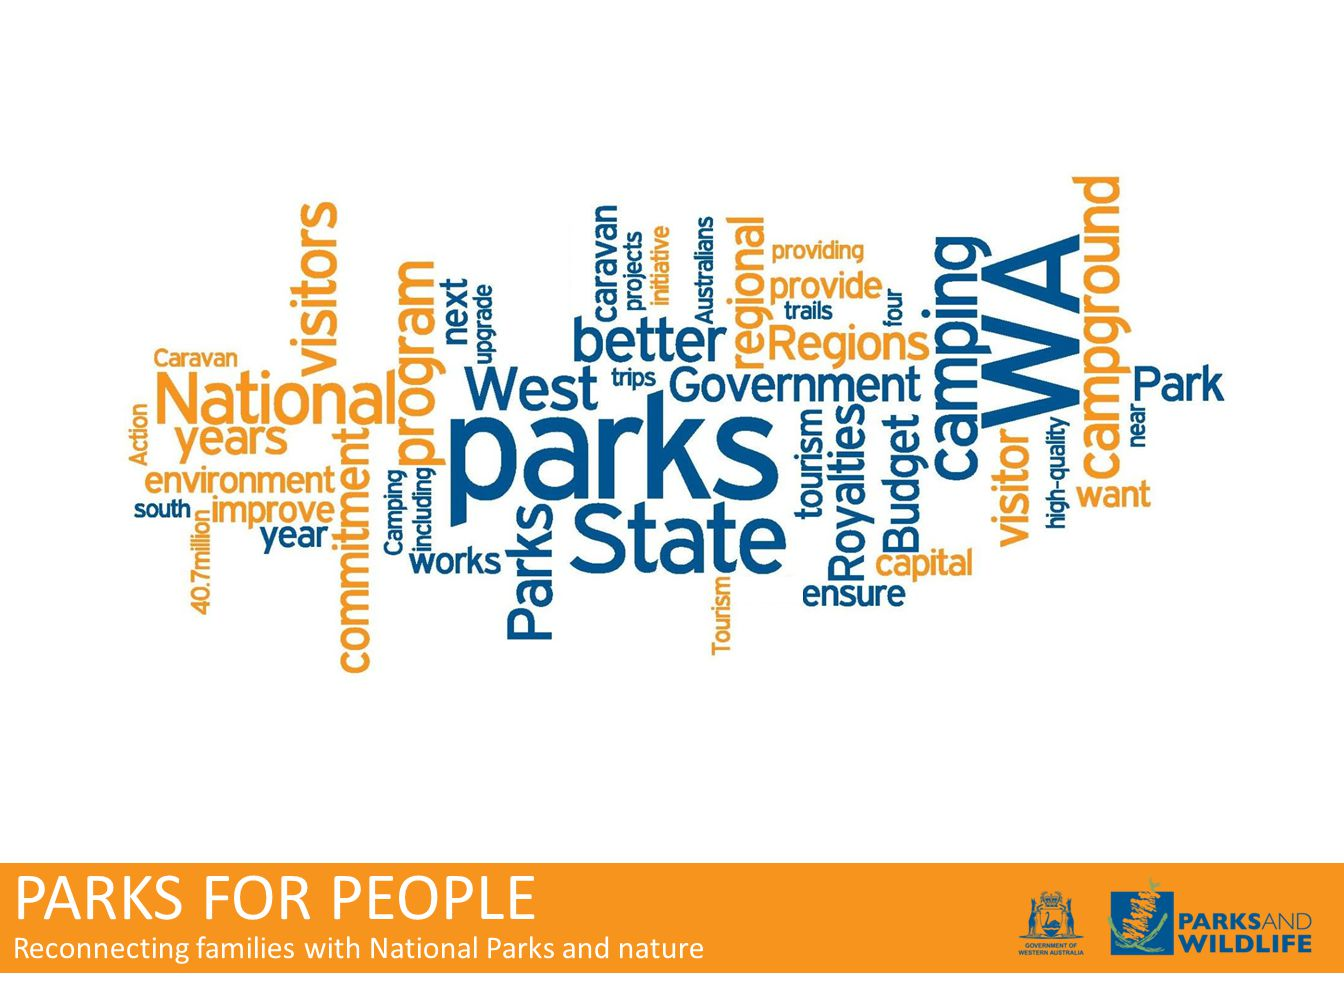 PARKS FOR PEOPLE Reconnecting families with National Parks and nature